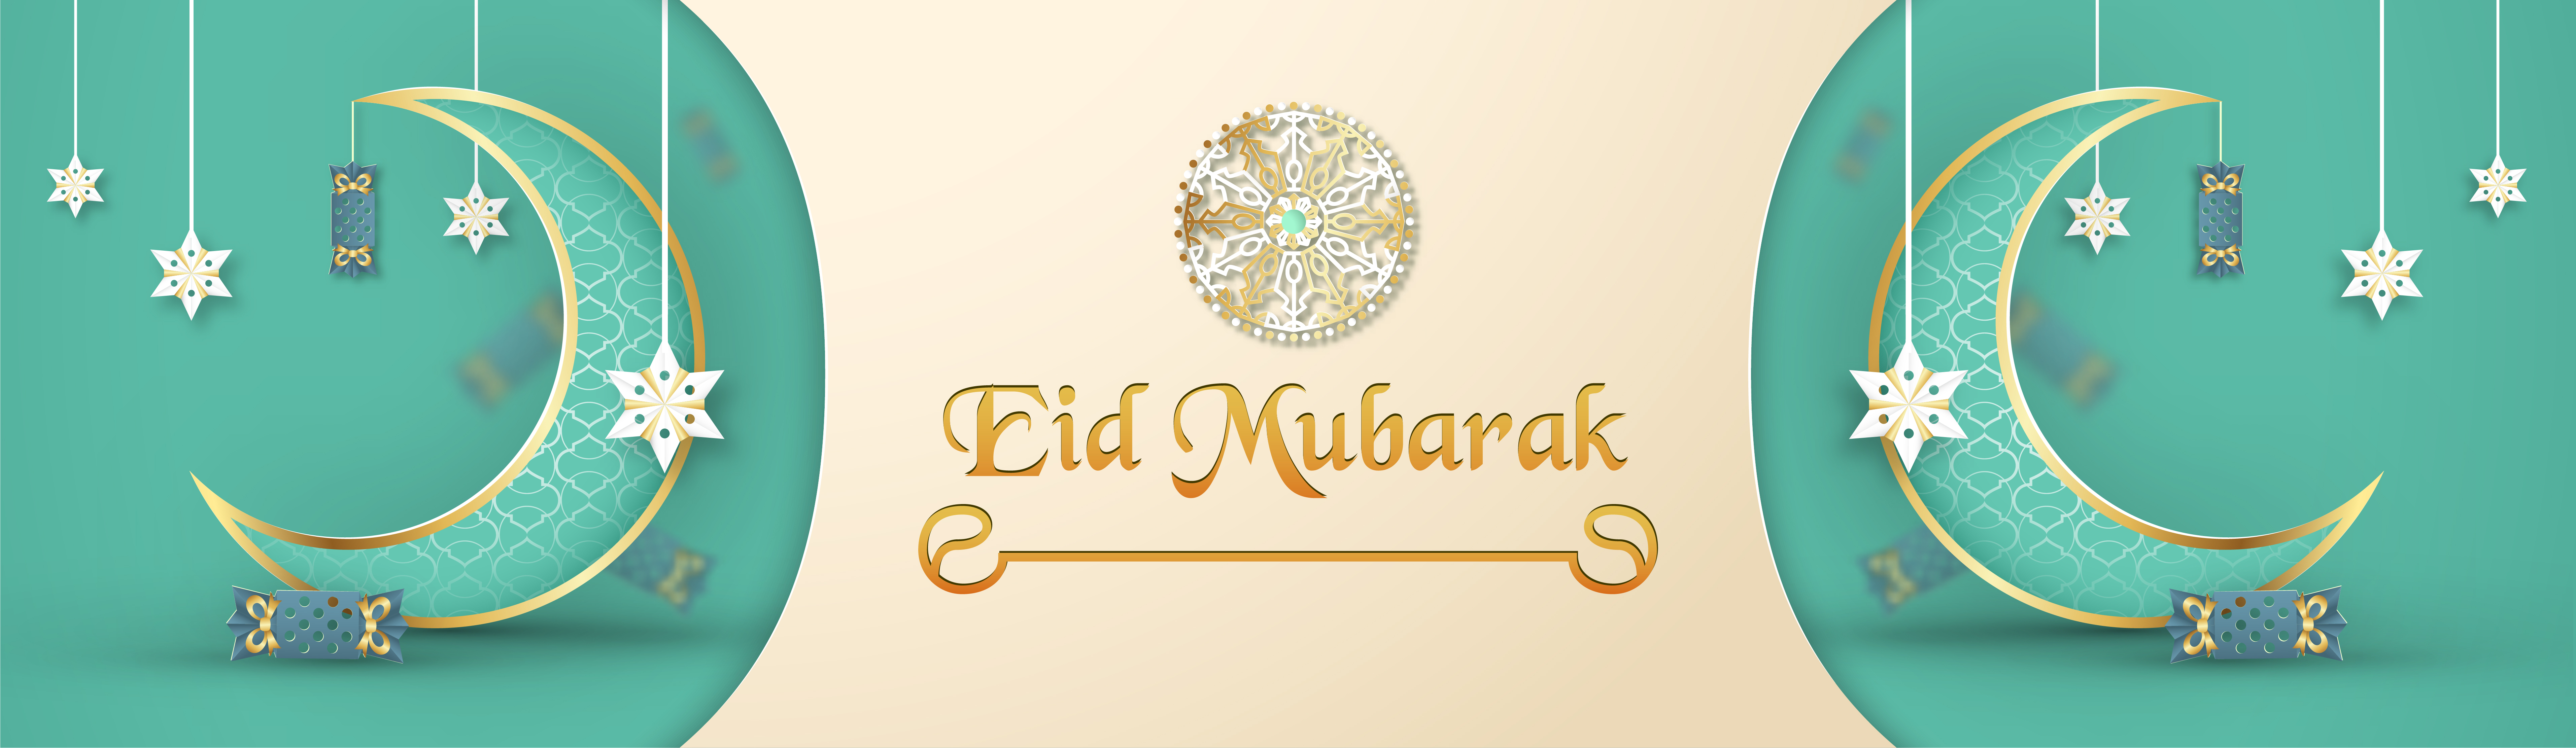 template for eid mubarak with green and gold color tone